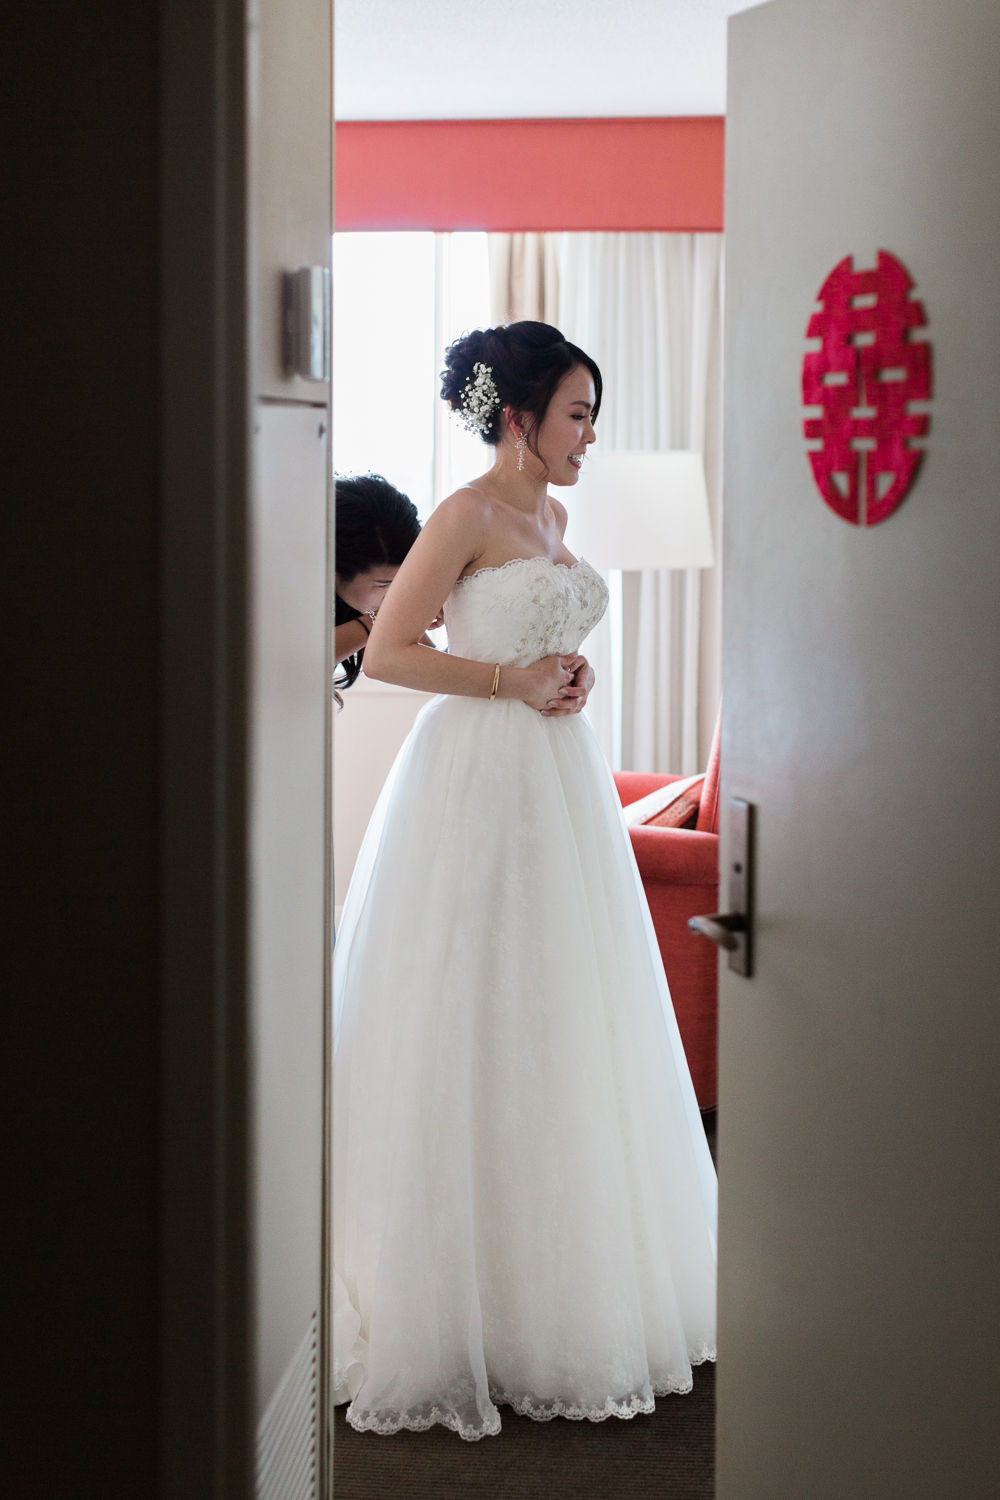 hyatt-regency-cambridge-wedding-photography-27